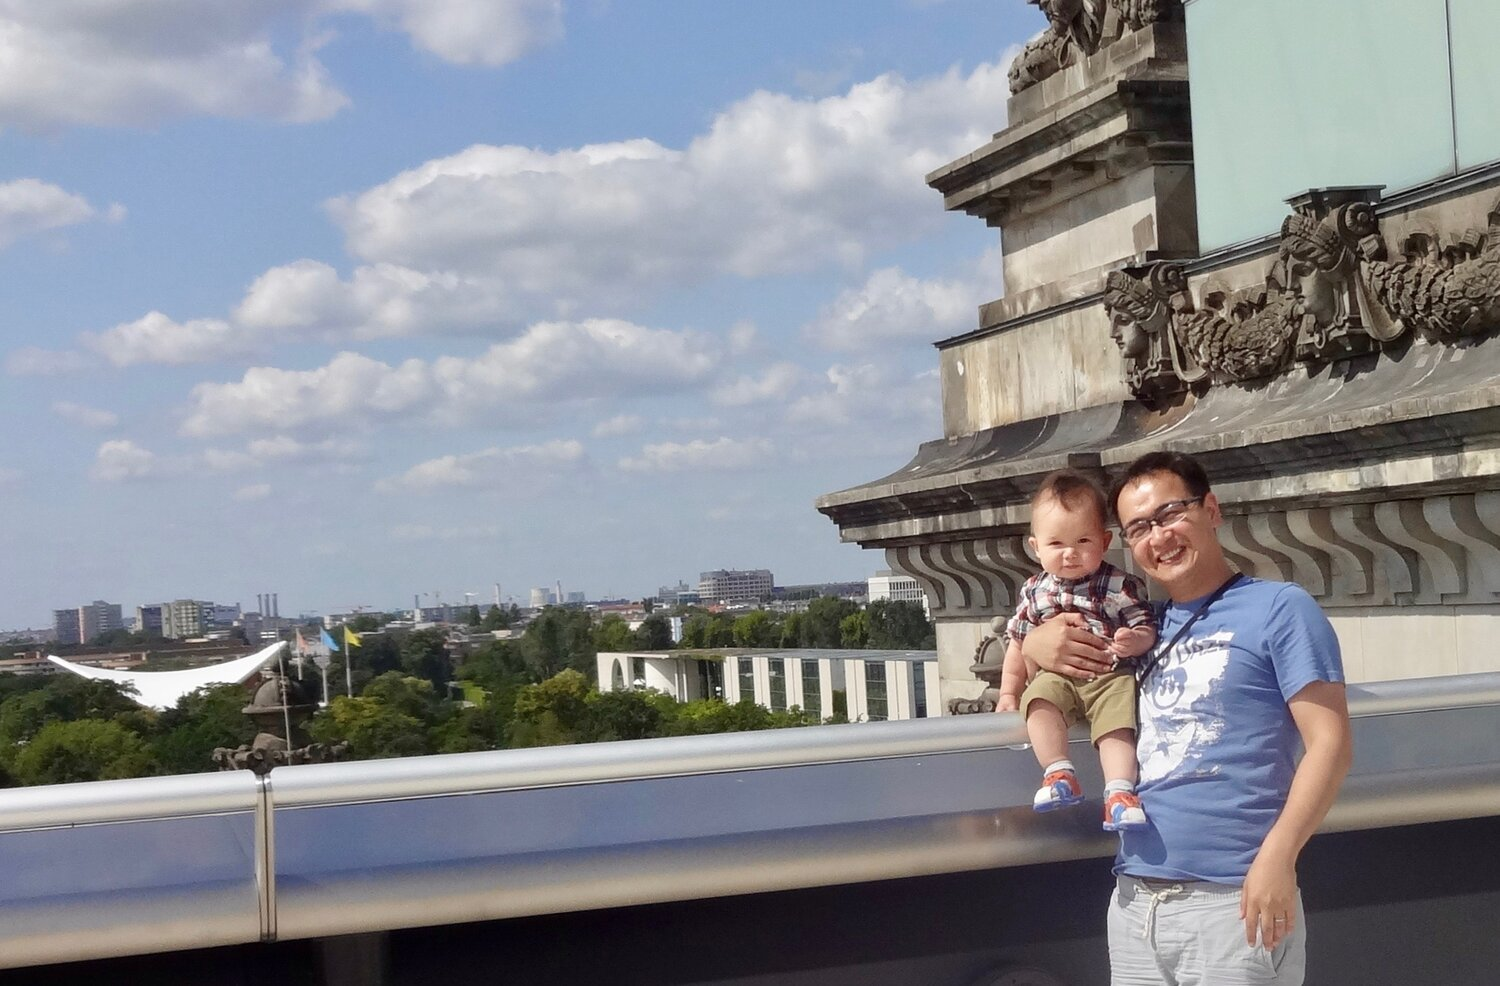 Gurban and his son taking in the Berlin sights